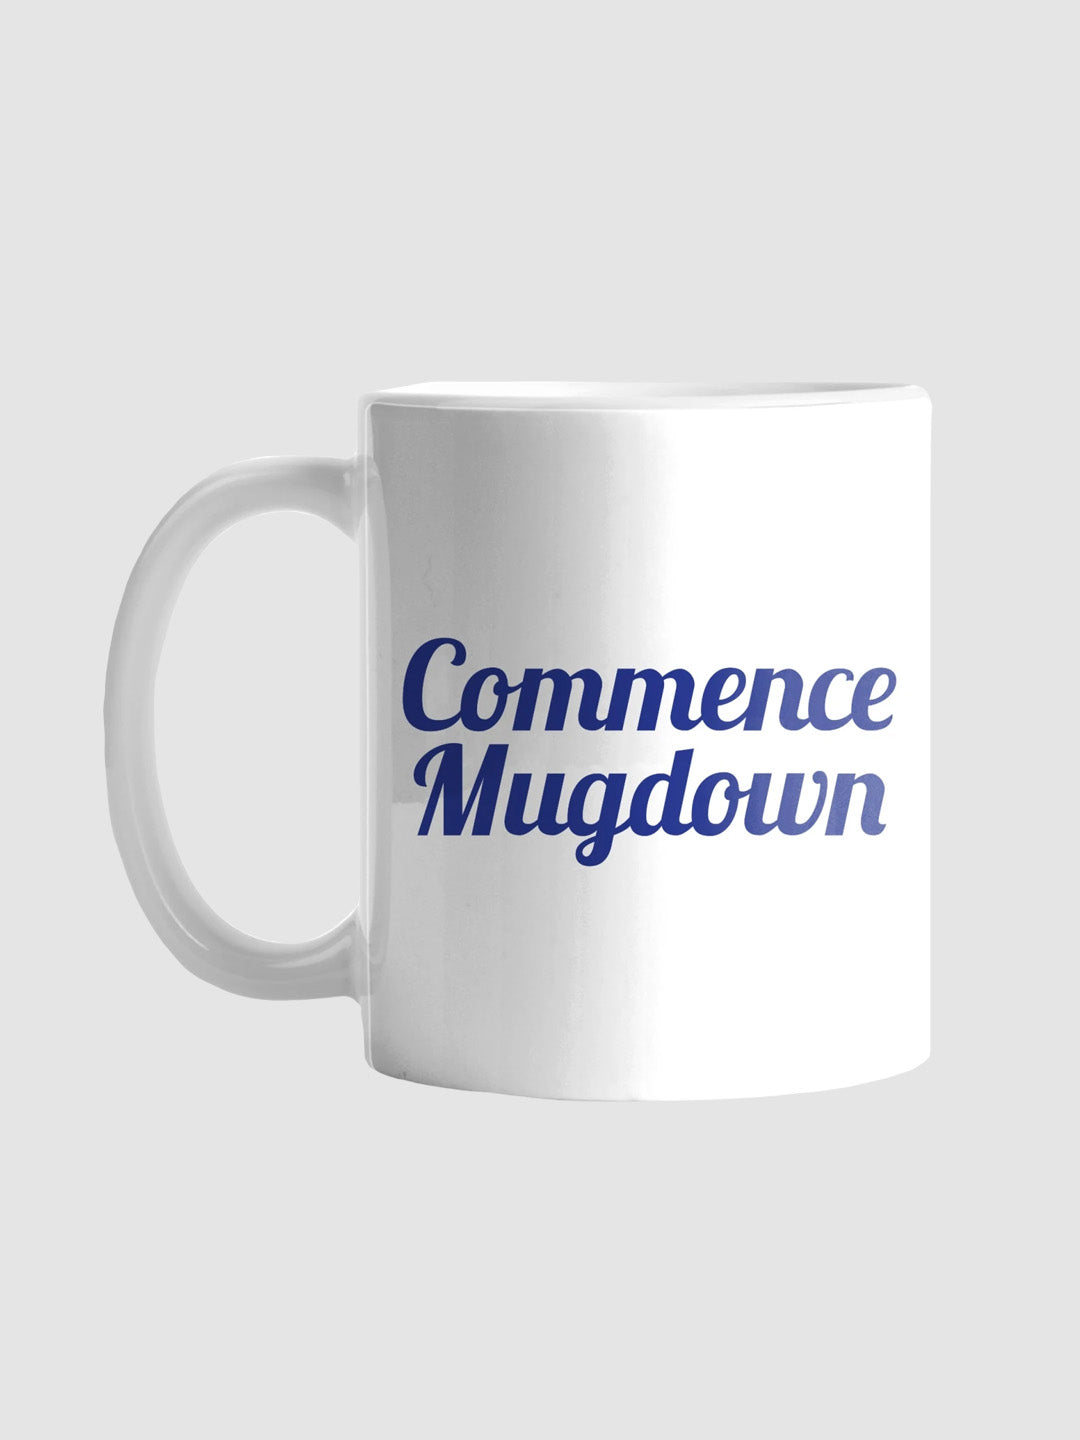 Commence Mugdown Mug White